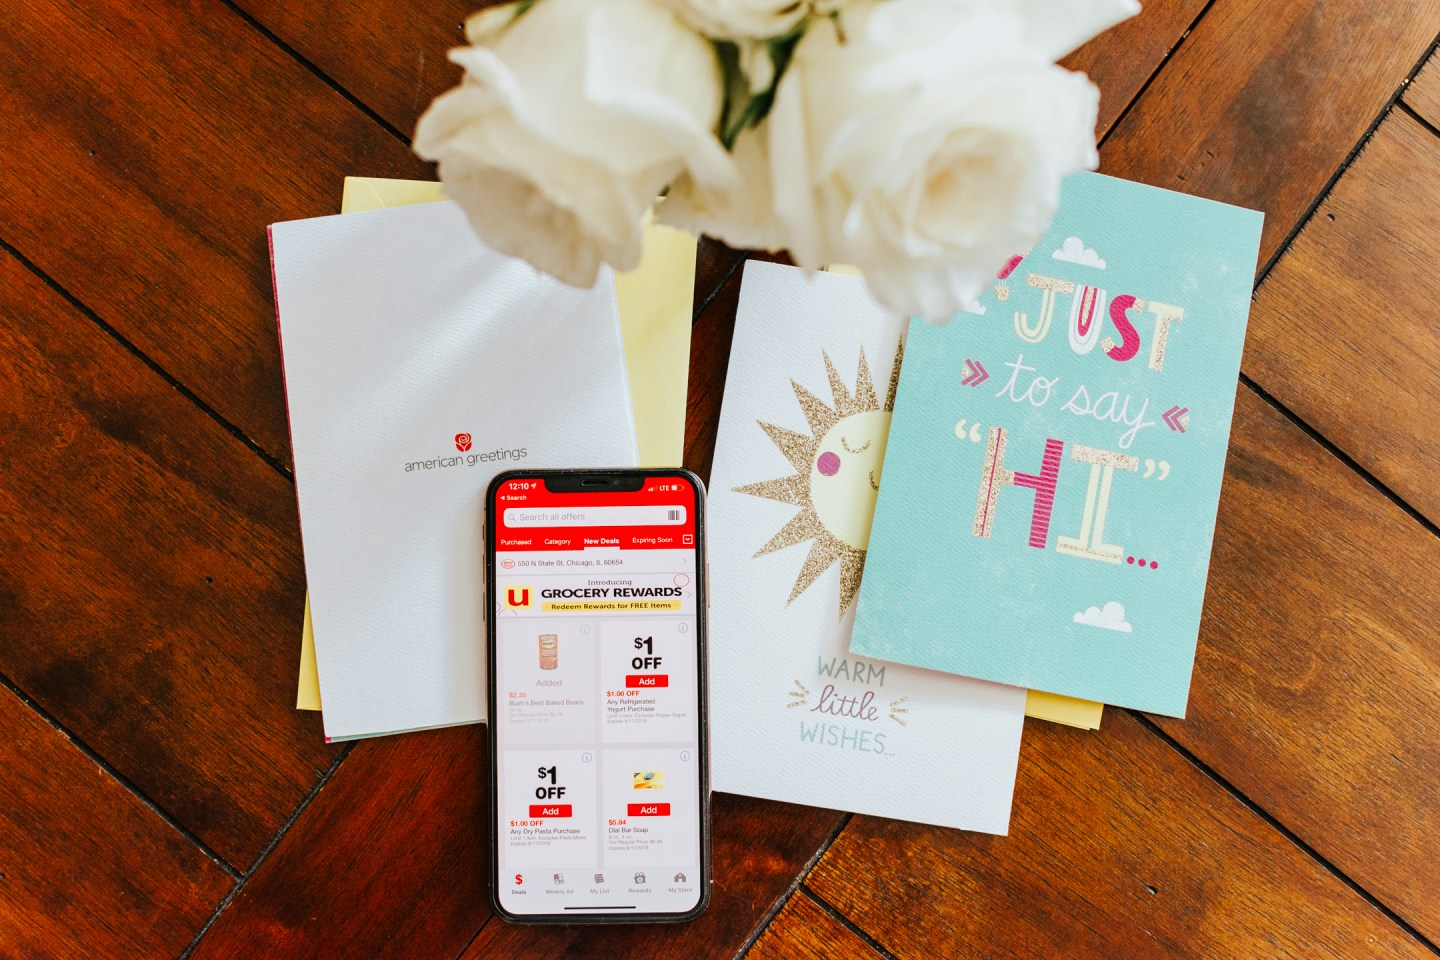 American Greetings at Albertsons Jewel Osco, staying in touch with long distance friends,